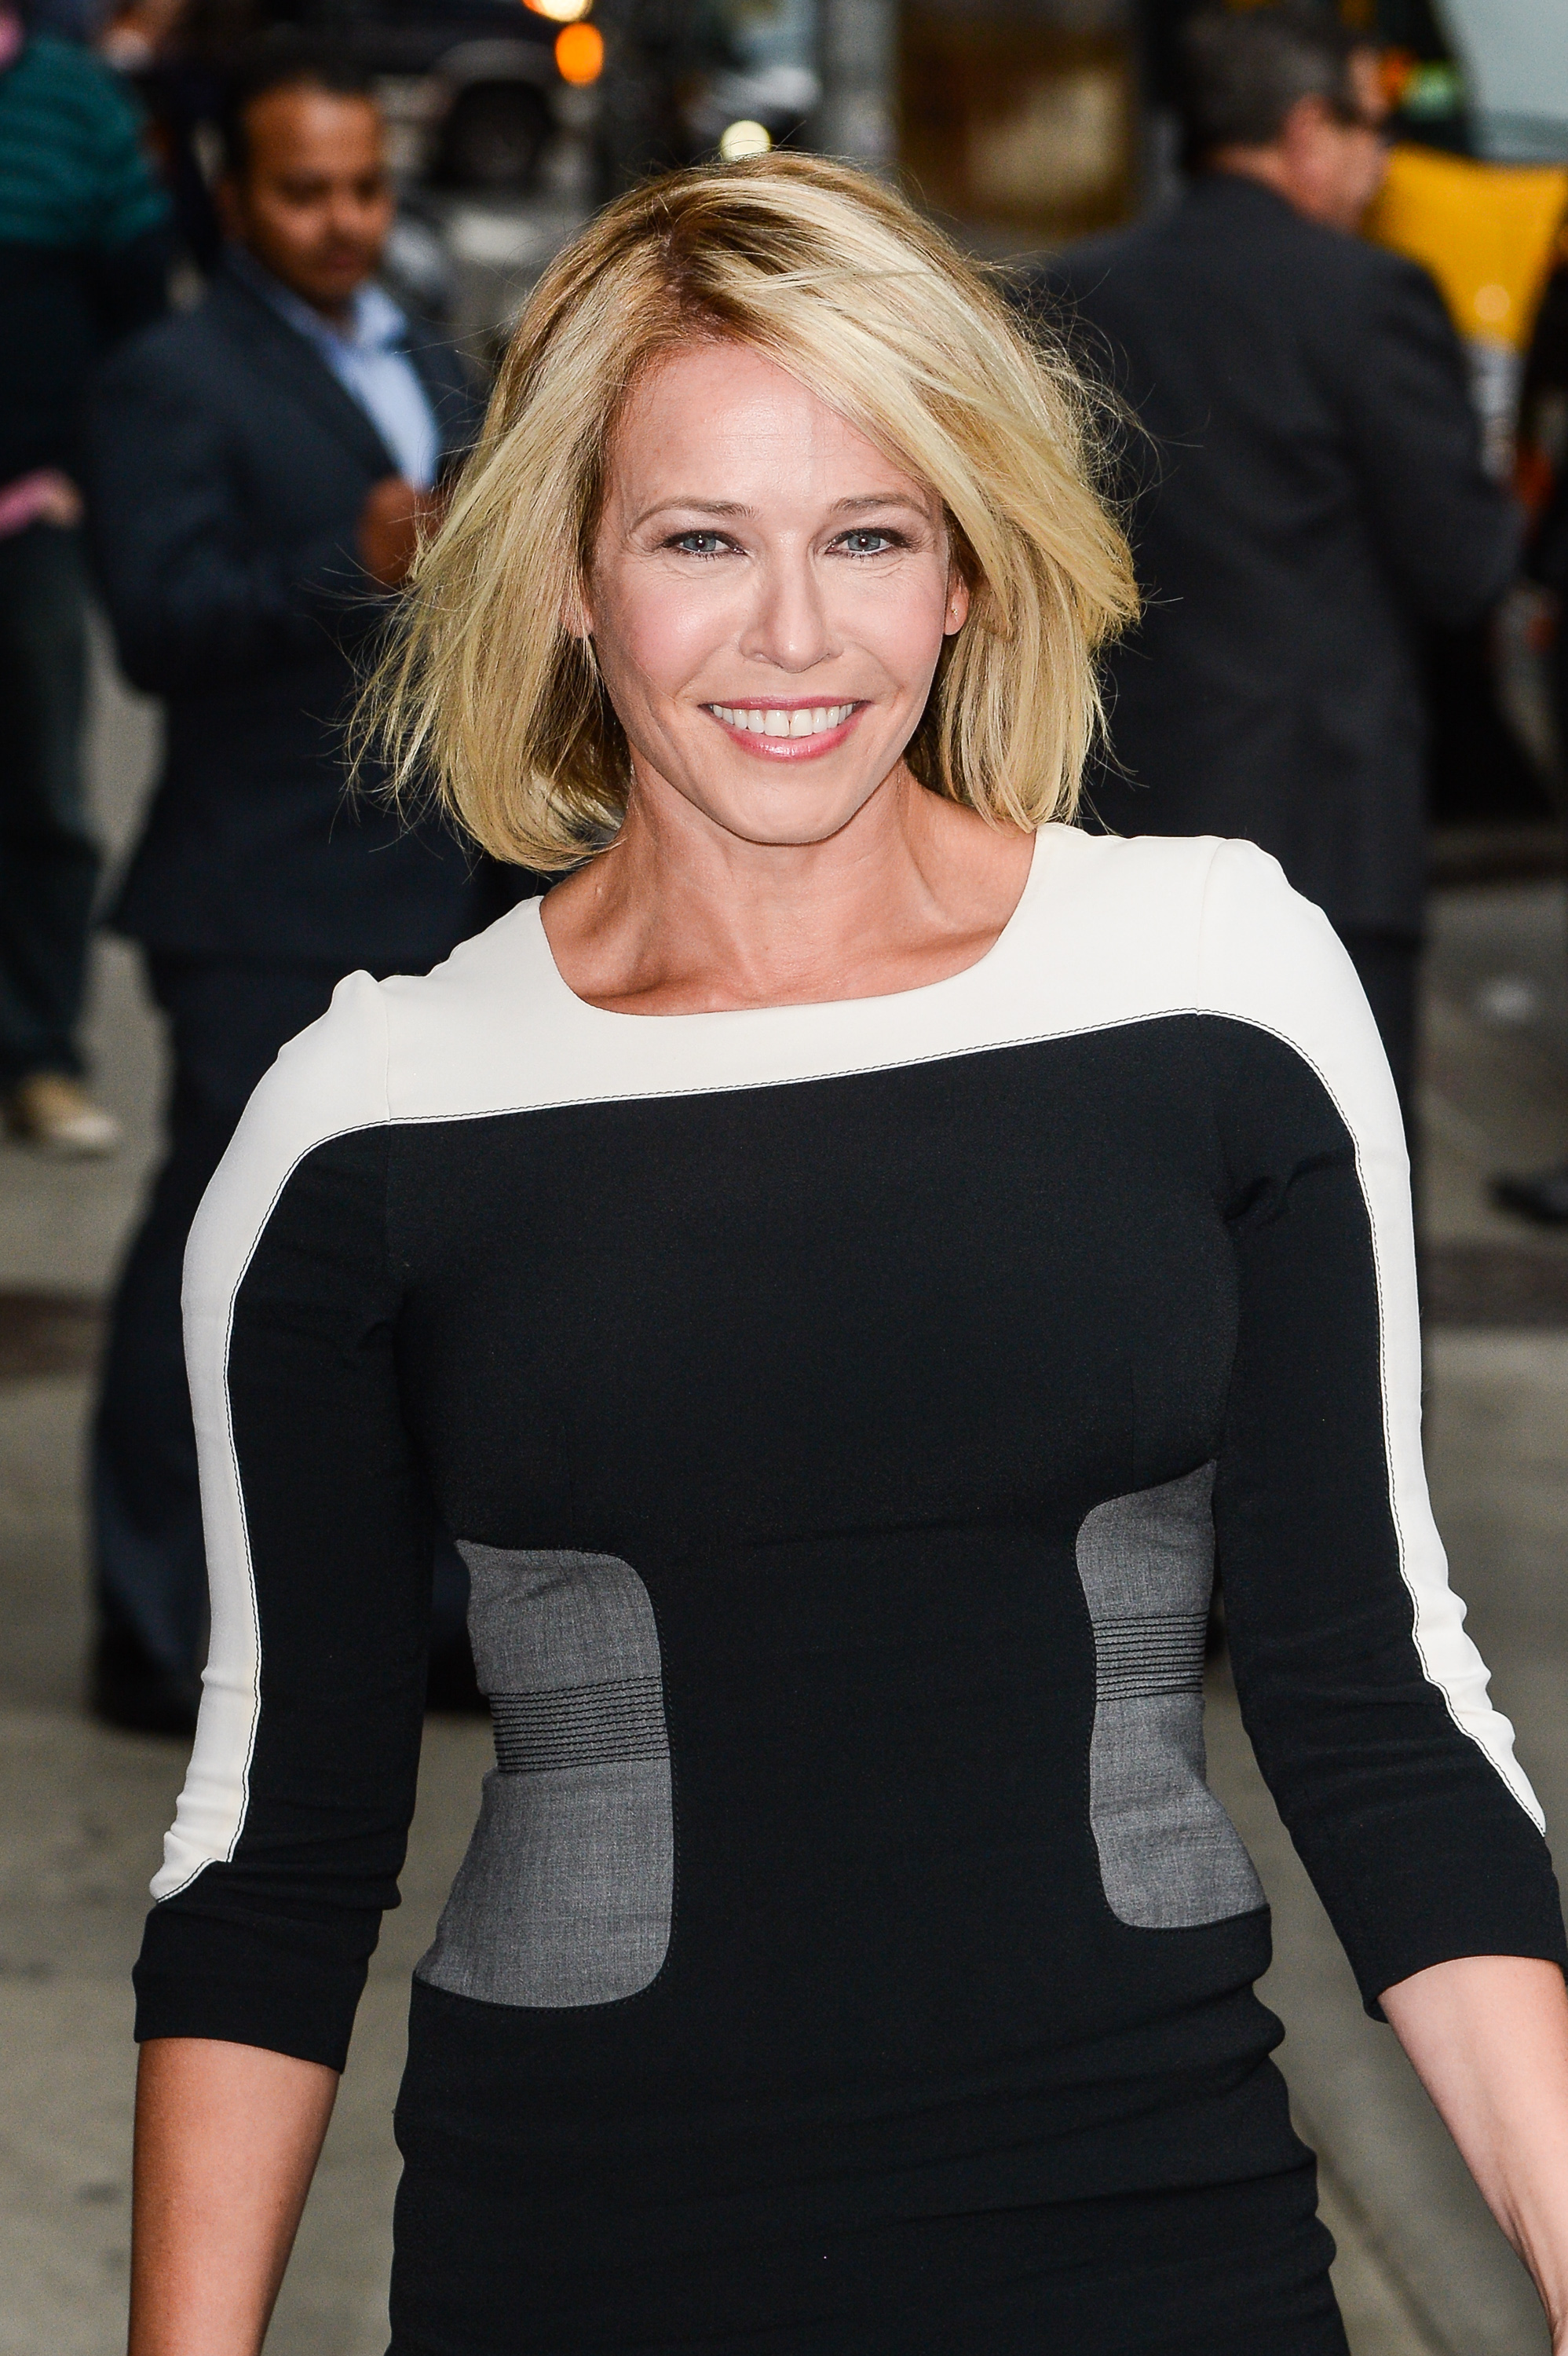 Actress Chelsea Handler enters the  Late Show With David Letterman  taping at the Ed Sullivan Theater on October 9, 2014 in New York City.